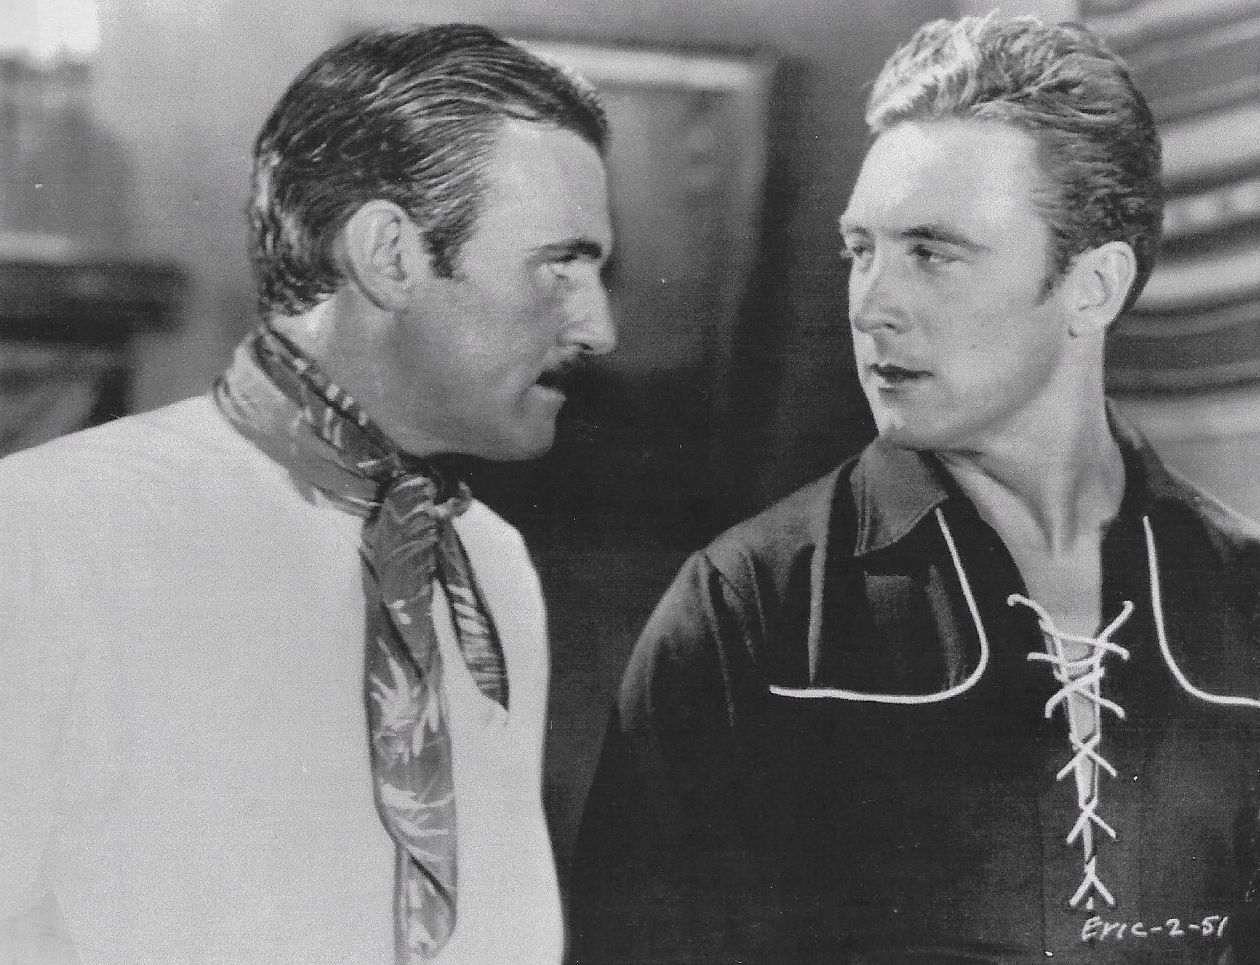 Walter McGrail and George O'Brien in The Lone Star Ranger (1930)